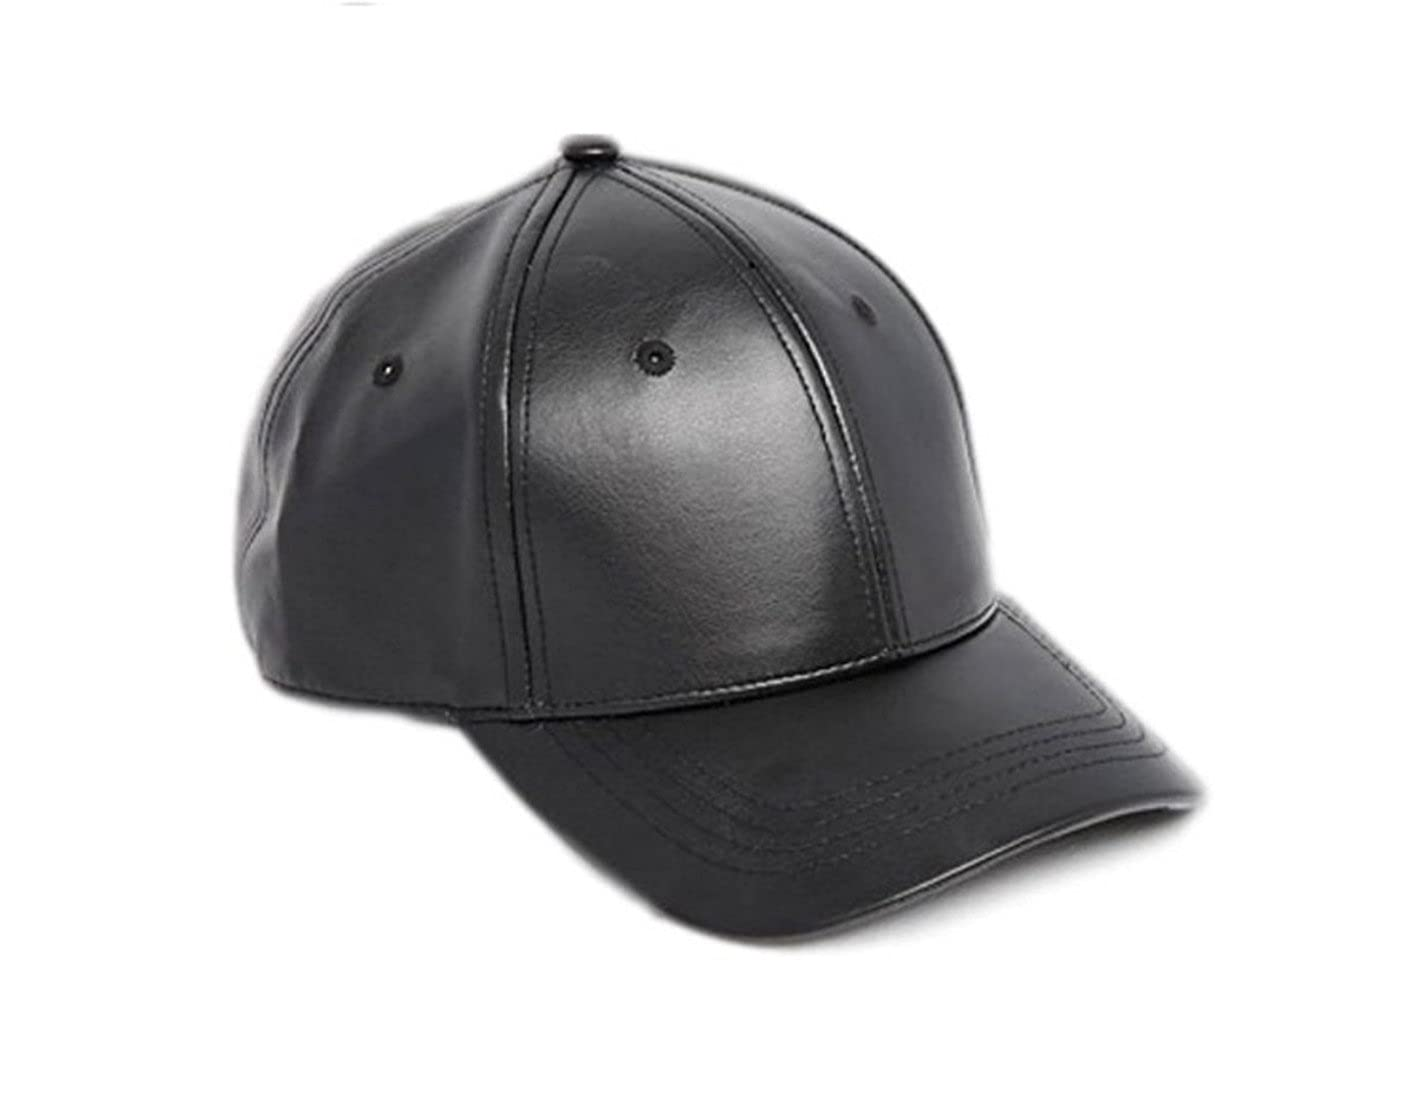 SAIFPRO Leather Black Baseball Caps for Men and Women  Amazon.in  Clothing    Accessories 197c5c29202